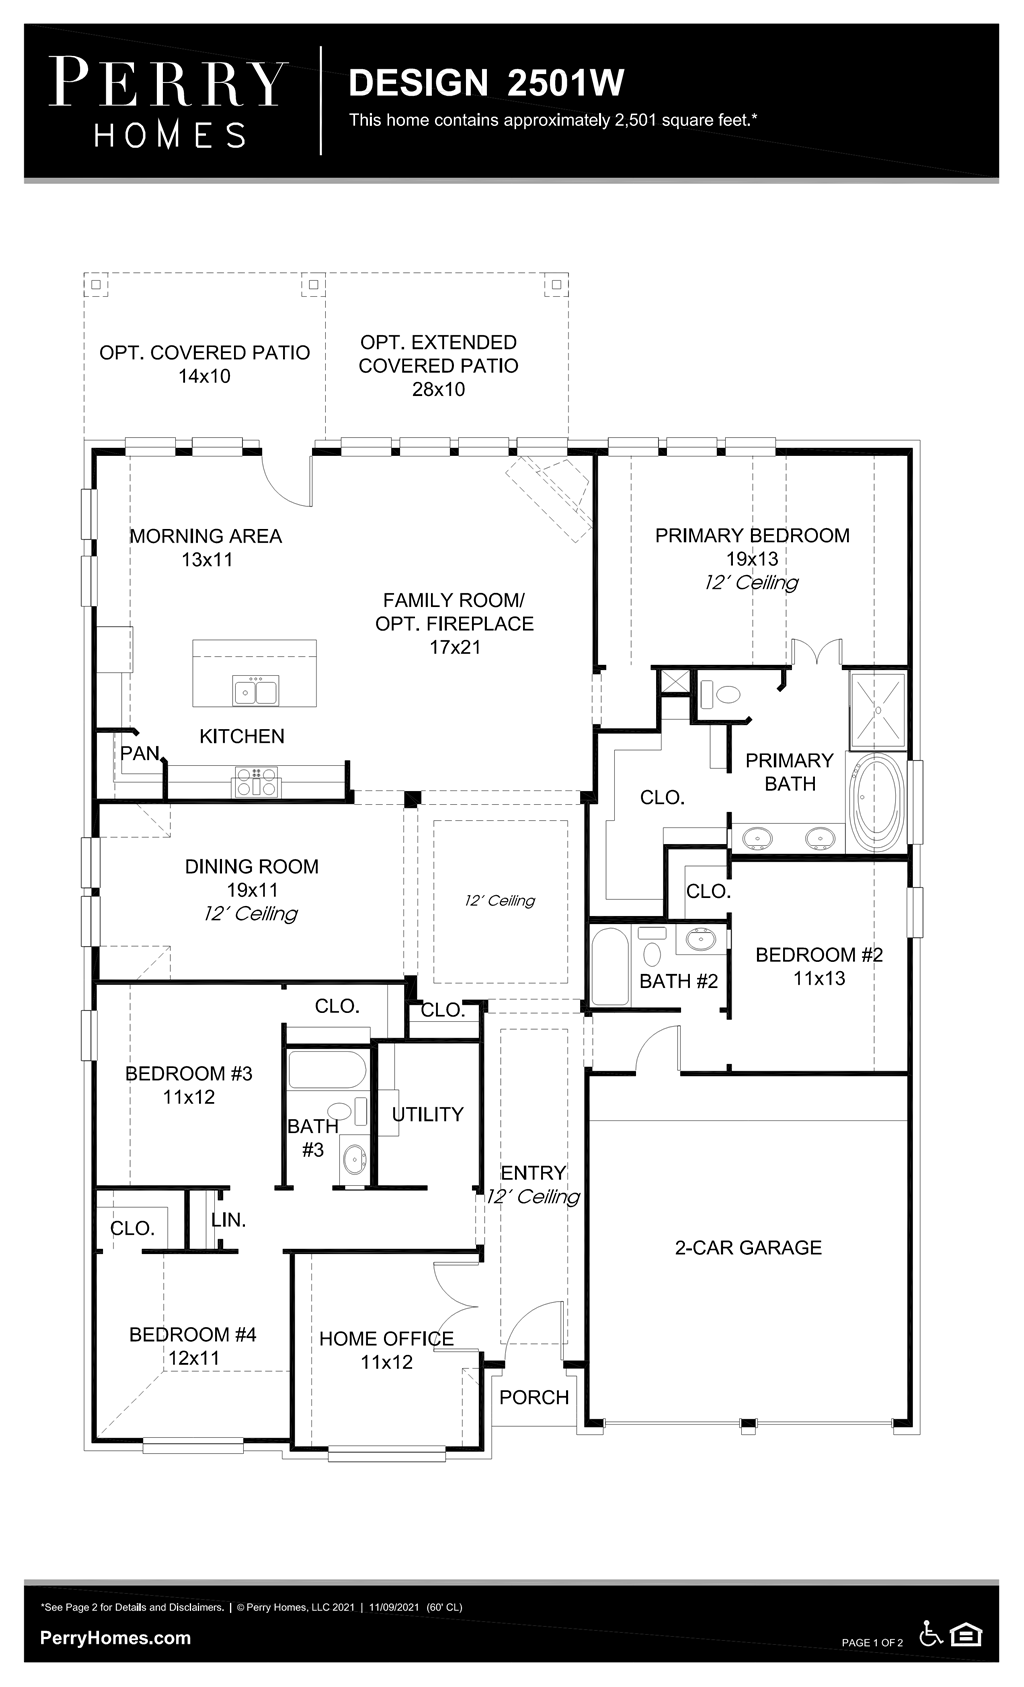 Floor Plan for 2501W